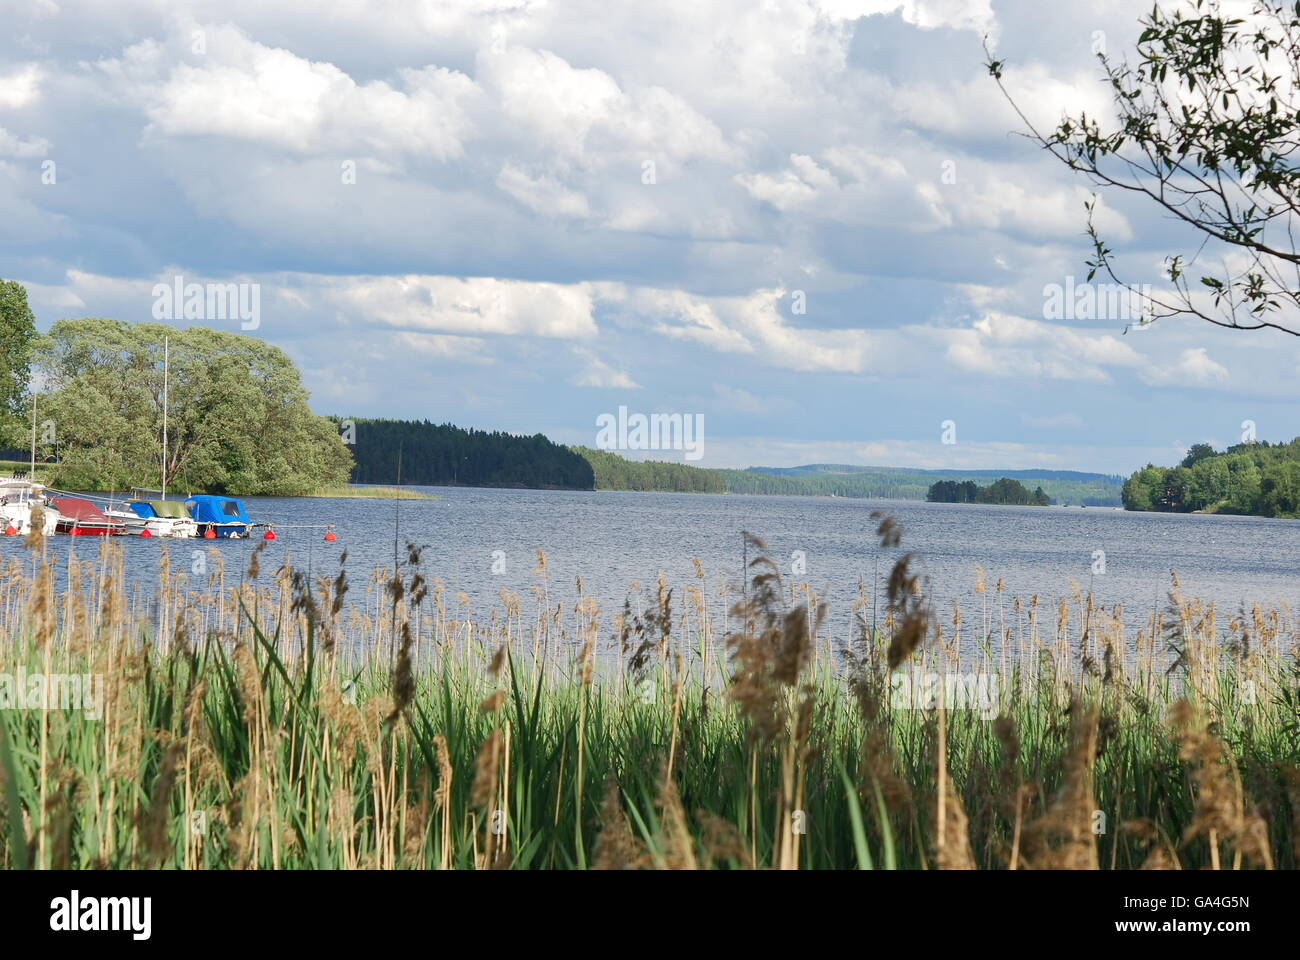 Swedish lake surrounded by trees - Stock Image